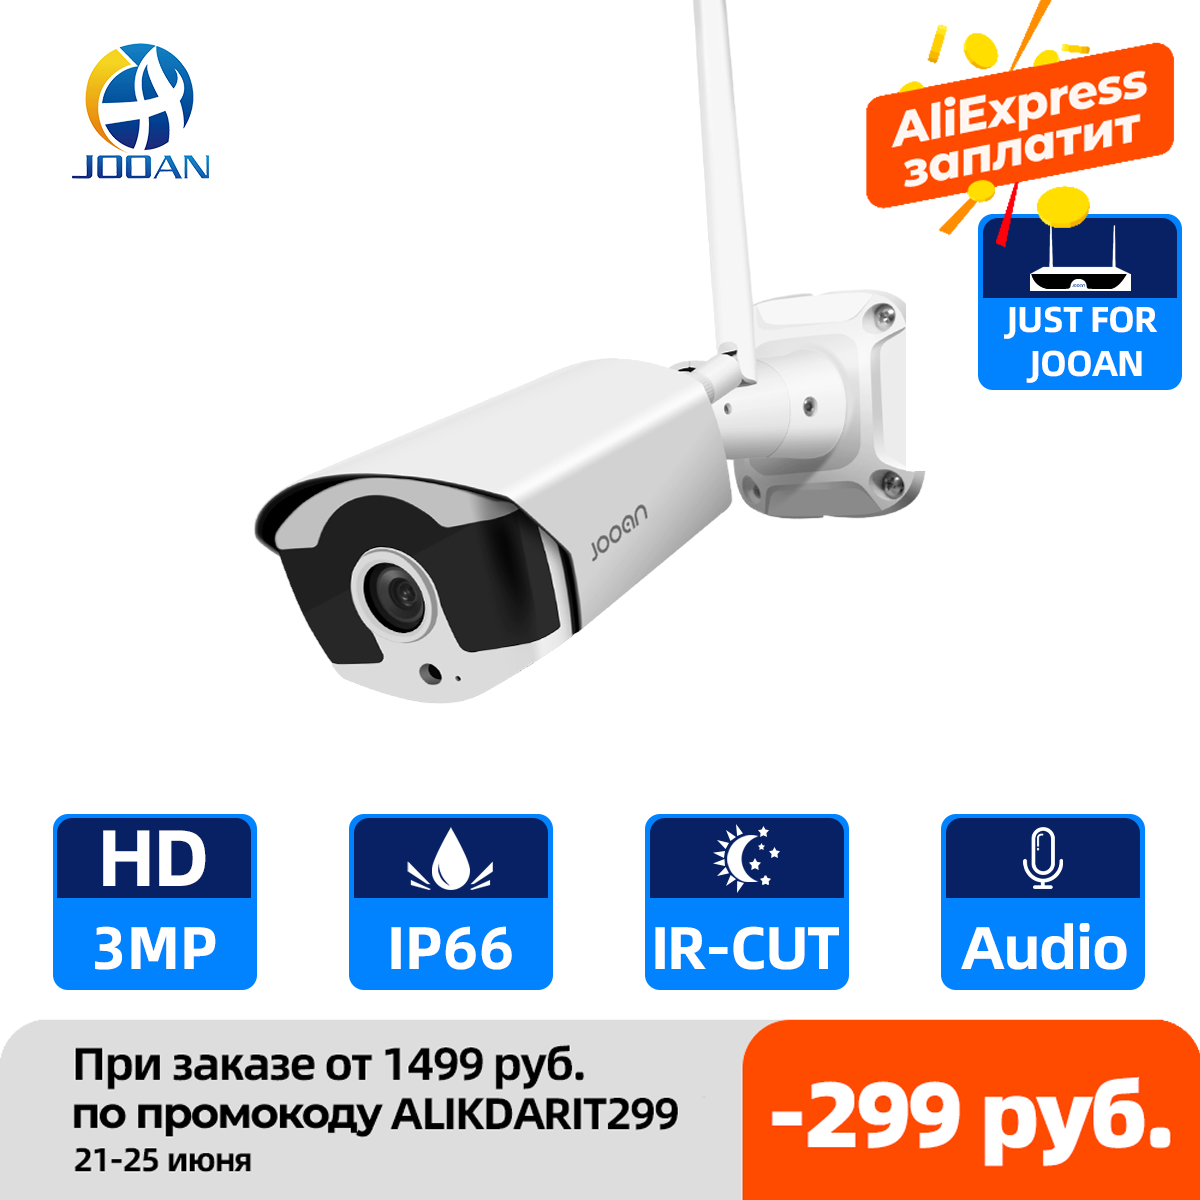 Wifi IP Camera 3.0MP Outdoor Infrared Night Vision Security Video Surveillance Audio Recording Wireless Camera for Jooan NVR